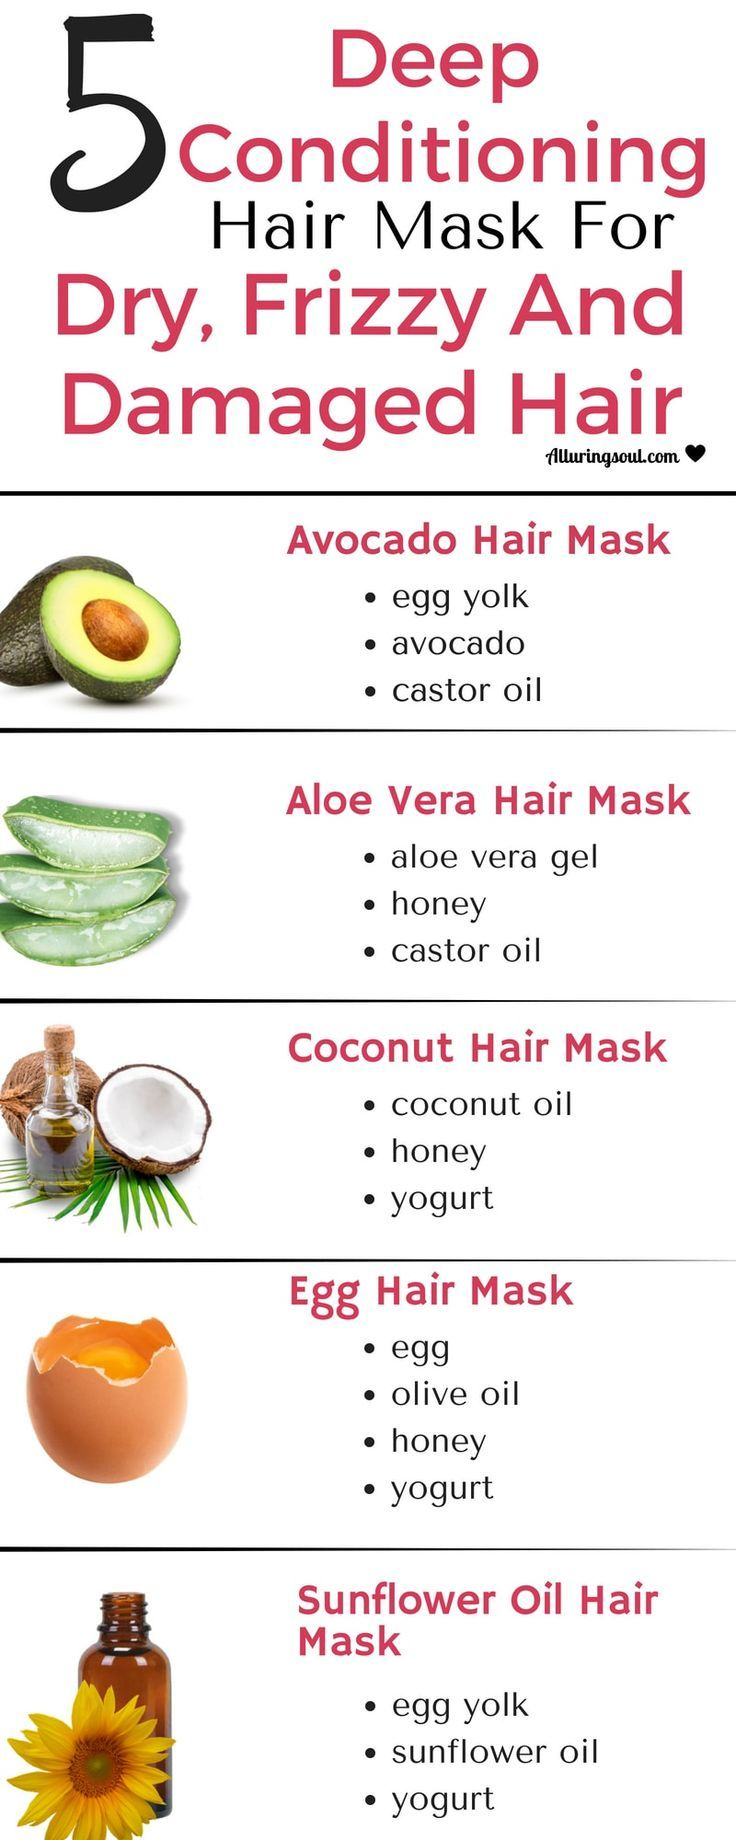 Get your hair problems solved with these deep conditioning